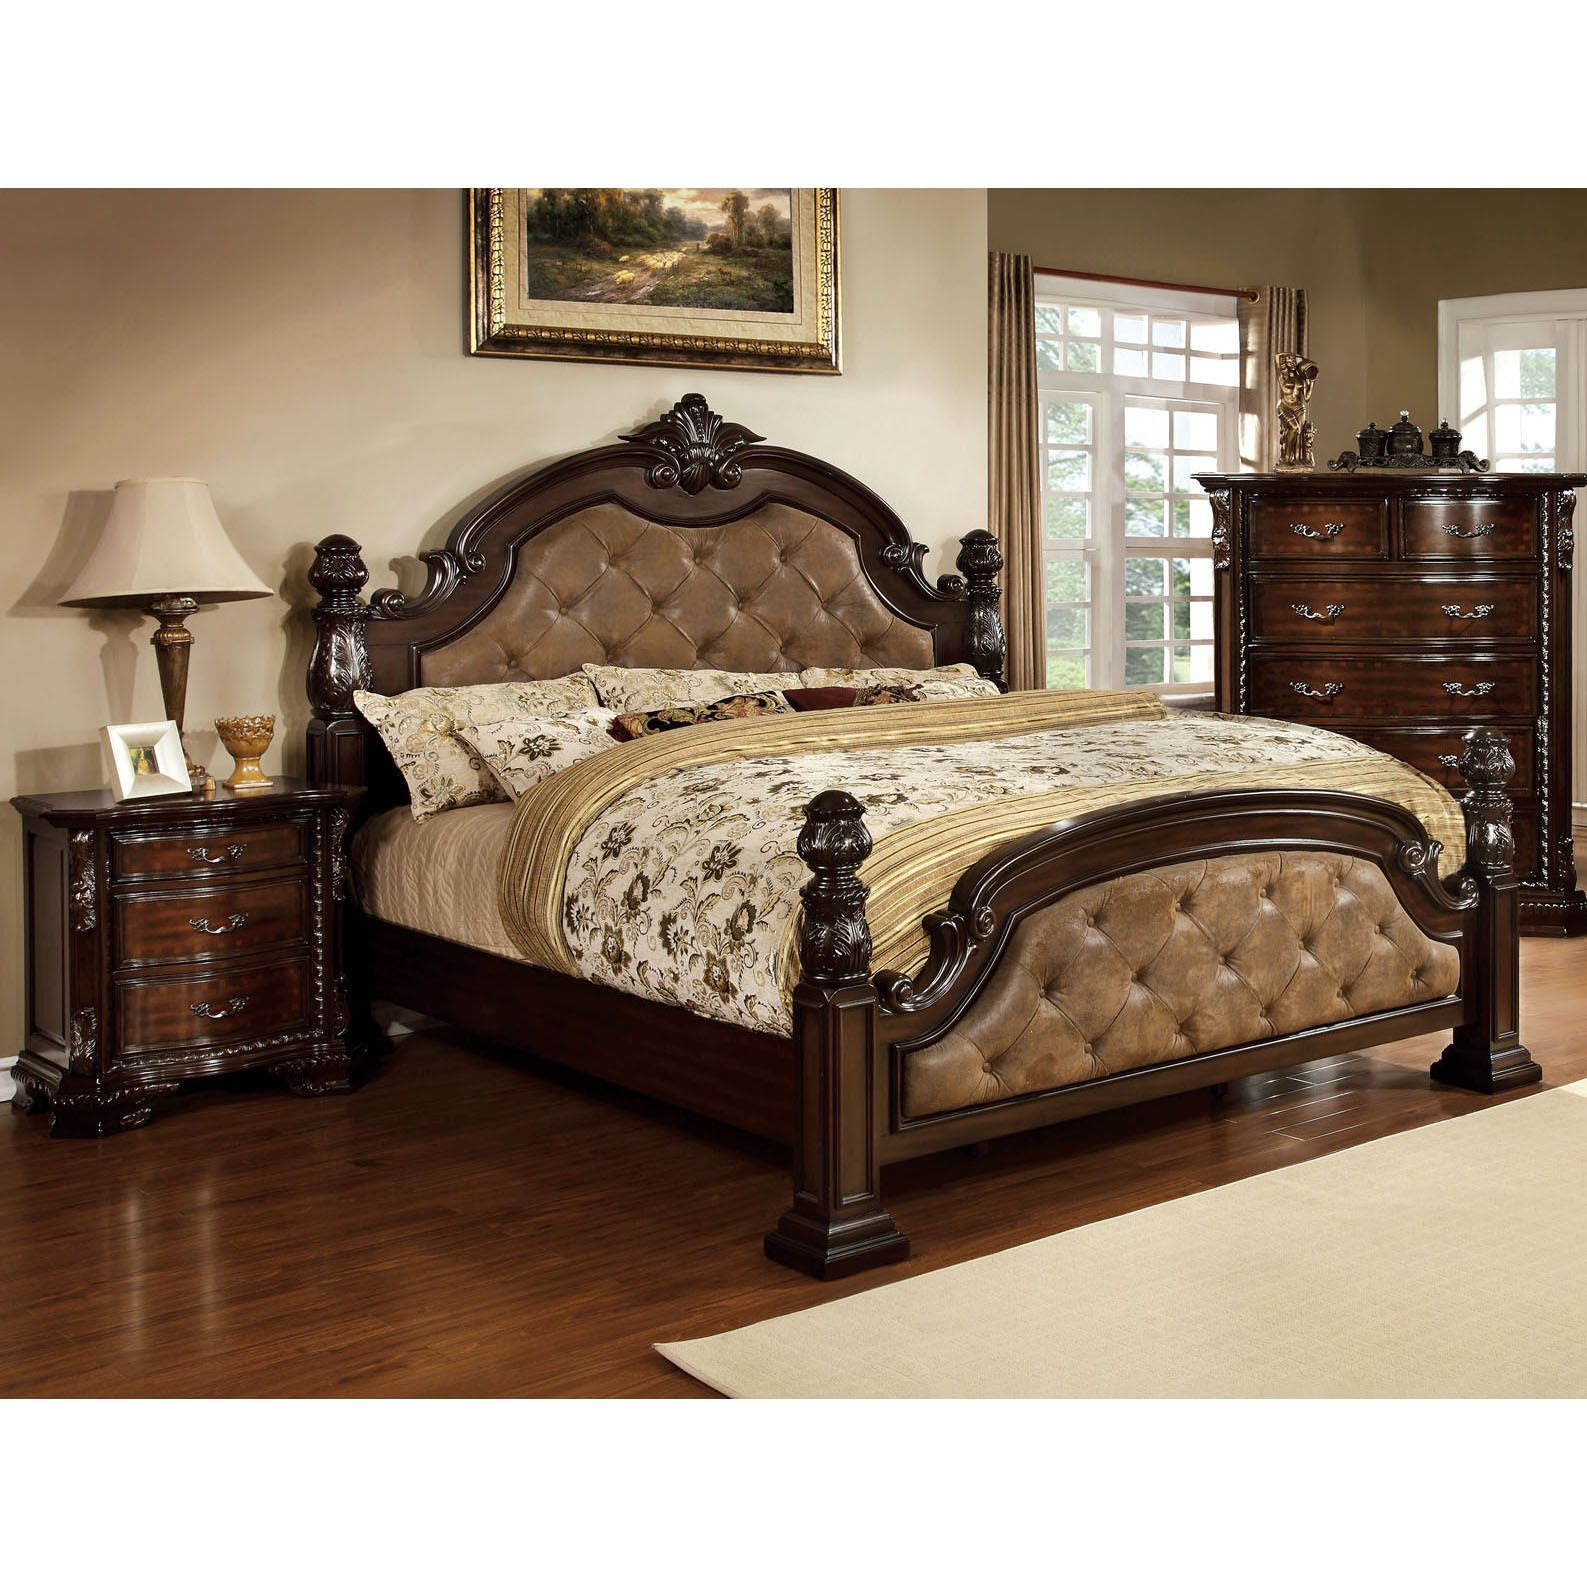 Luxury Poster Beds smallest nightstandtop pickelegant in every inch of carved